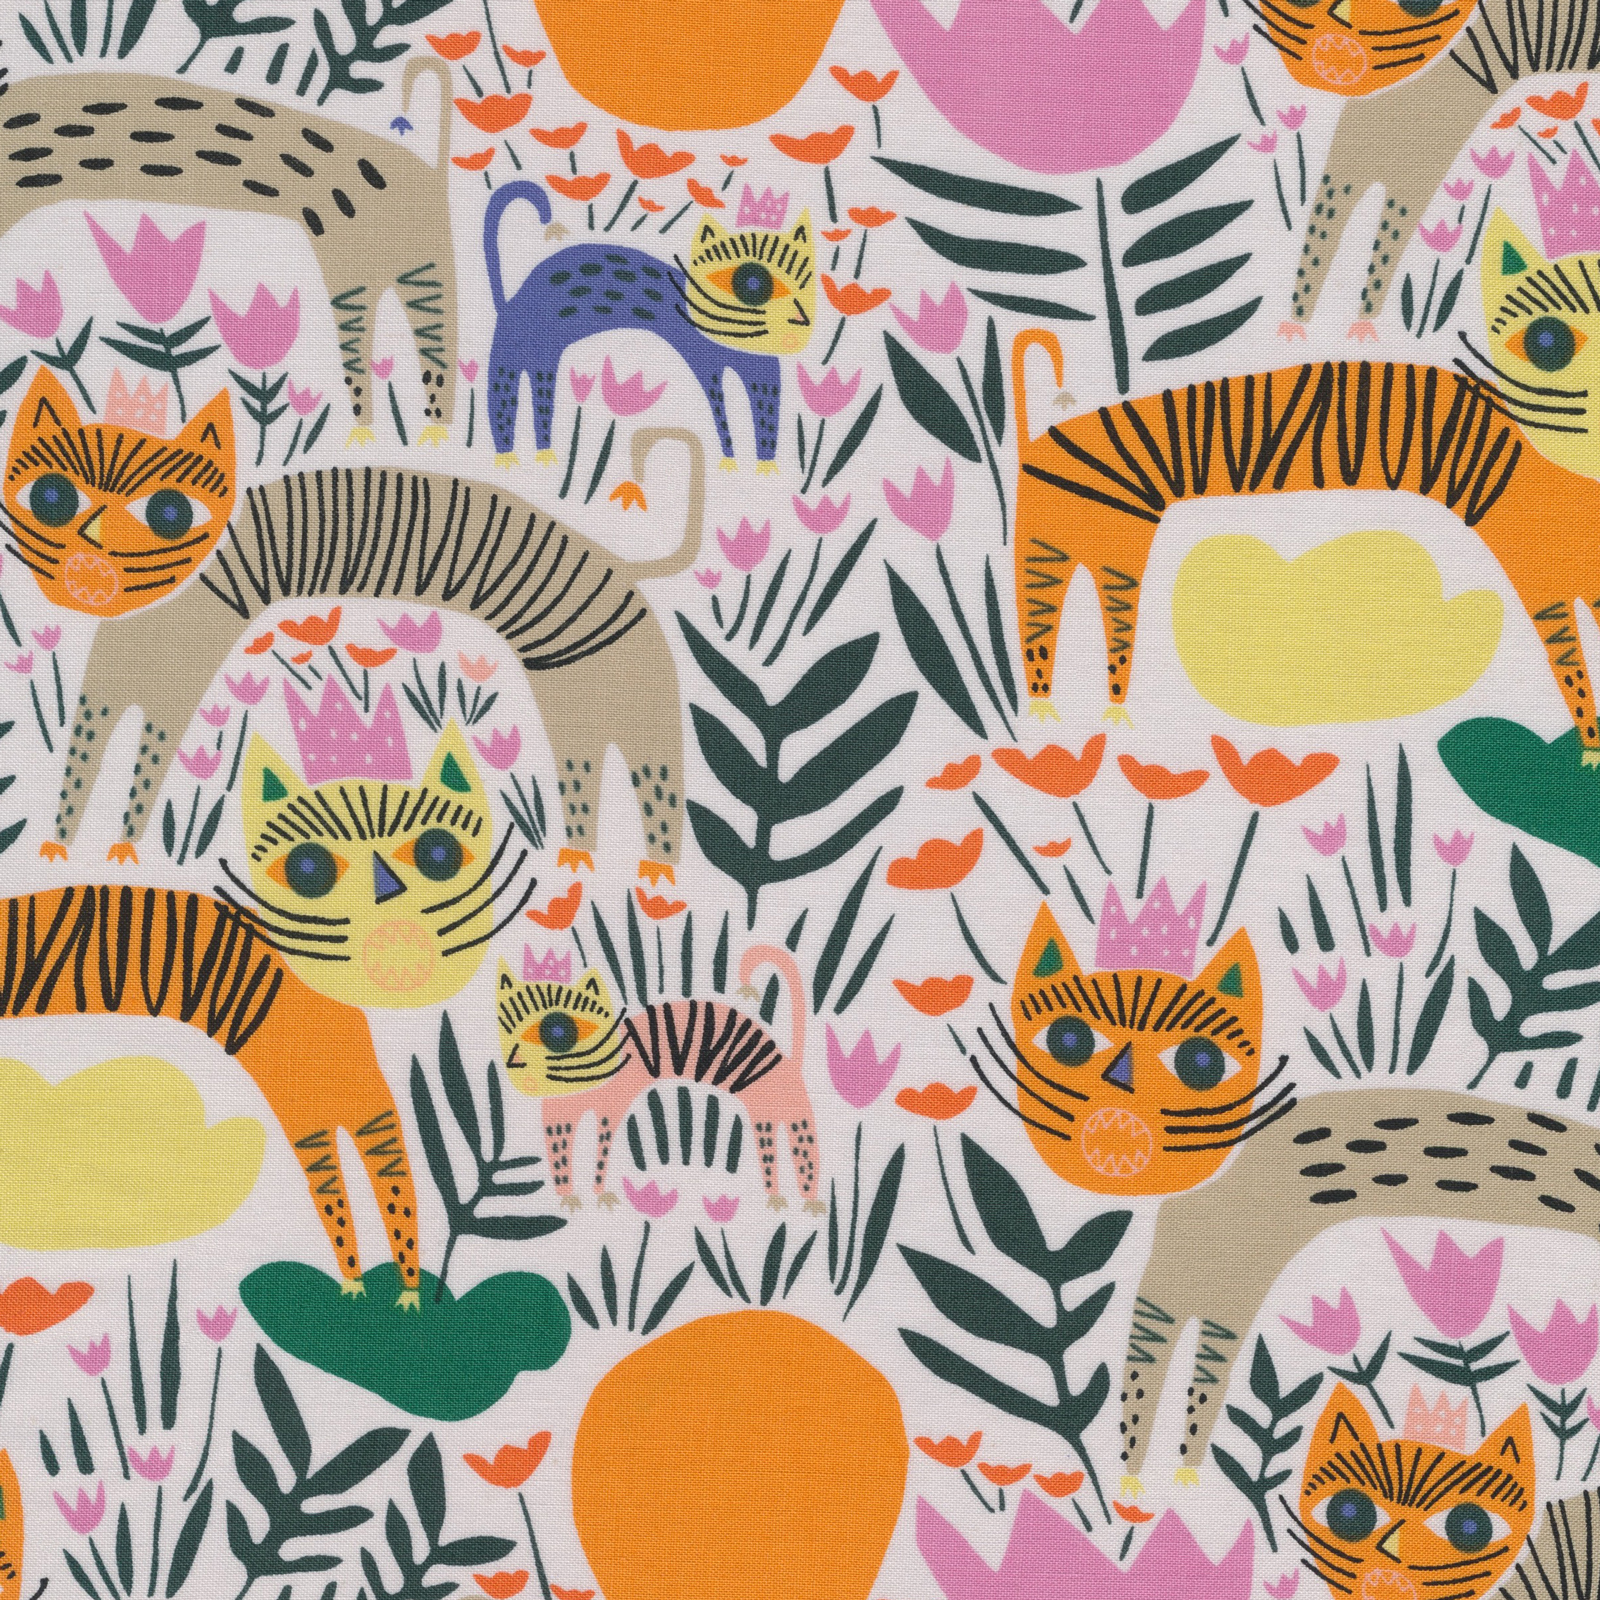 Queen of Beasts from the Wild collection by Cloud9 Fabrics, 100% organic cotton fabric